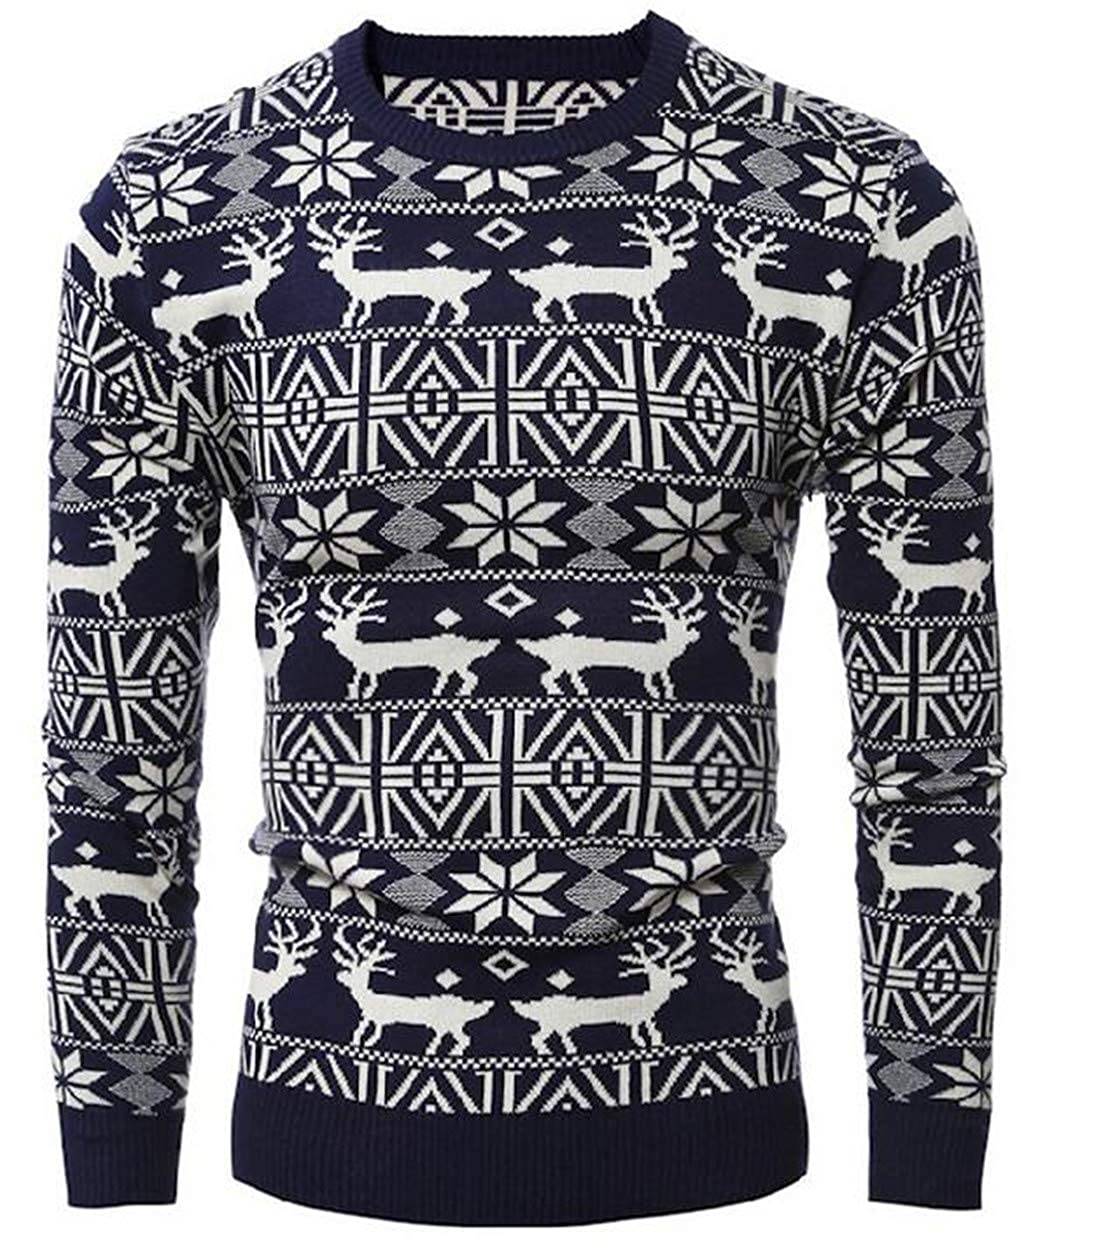 JXG Men Pullover Knitted Crew Neck Long Sleeve Thick Christmas Printed Sweater